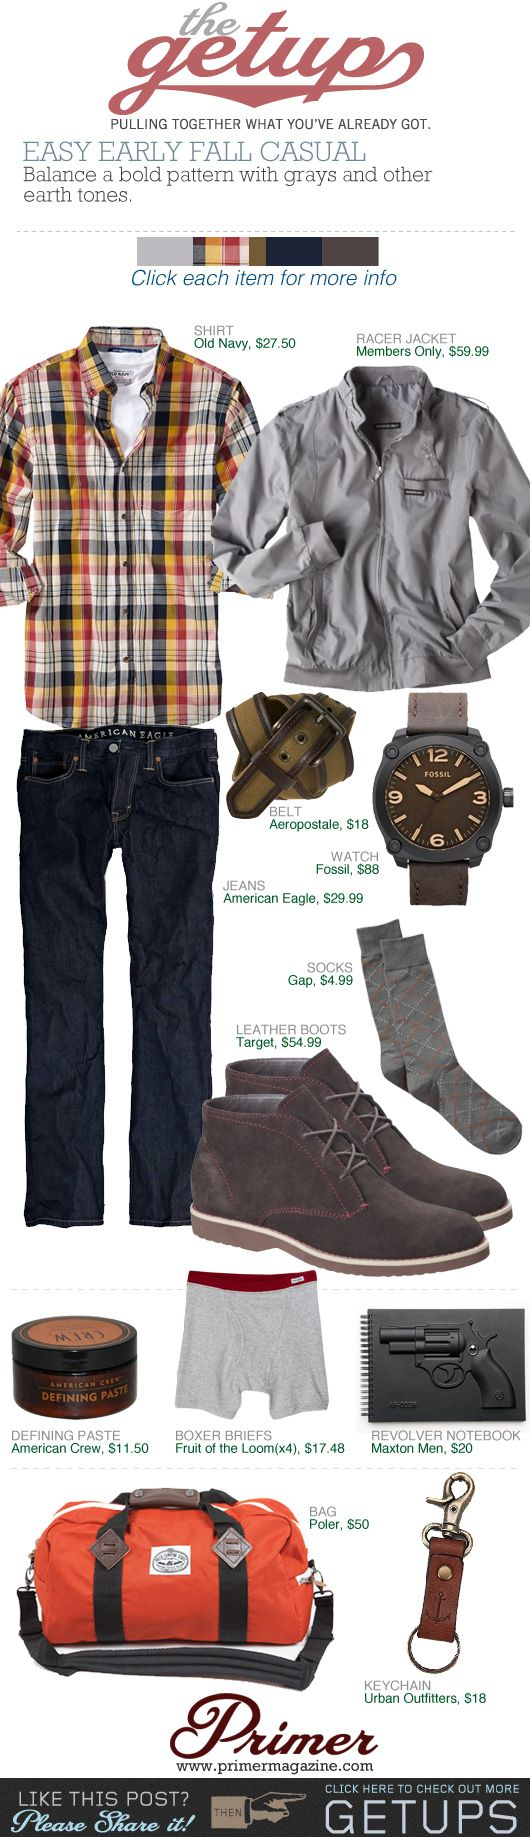 The Getup: Easy Early Fall Casual | Primer. This is pretty much what I wear all year long.